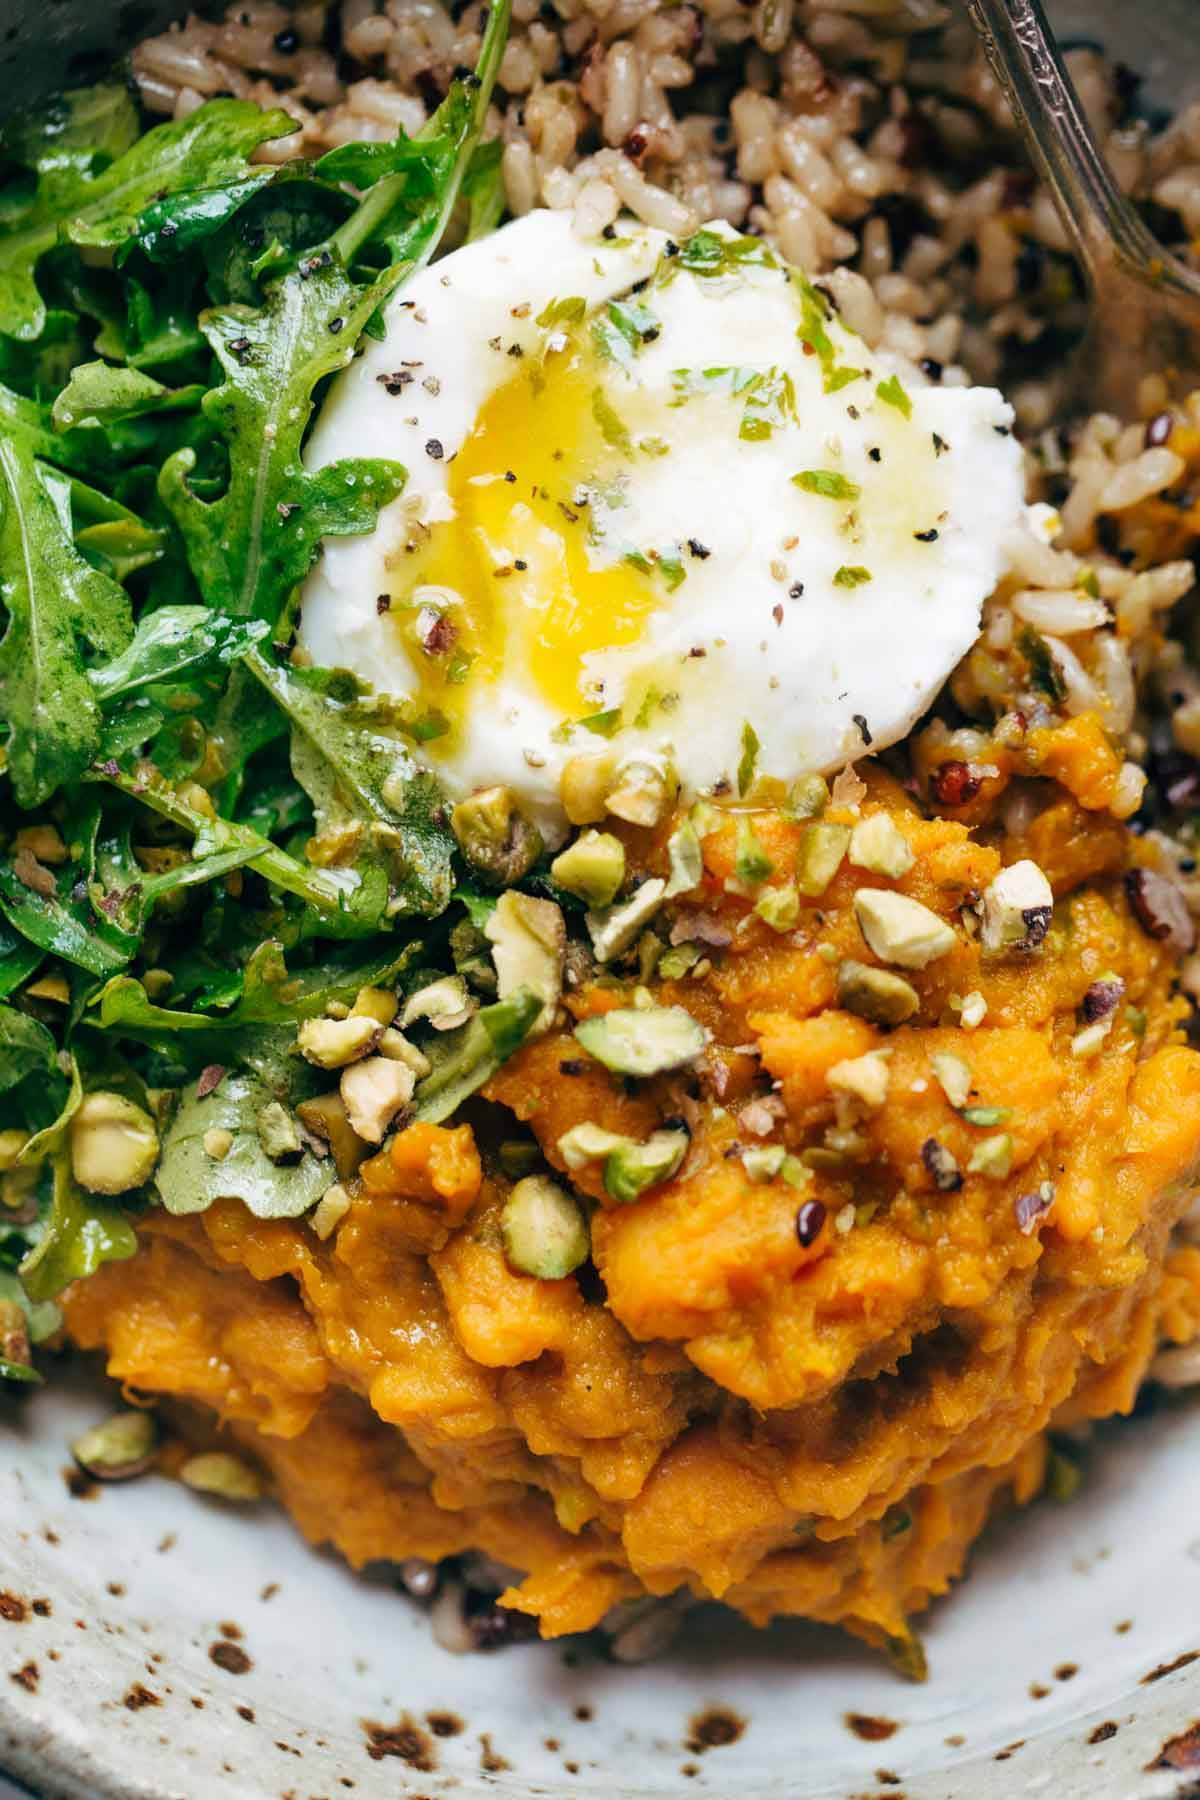 Sweet potatoes with brown rice and an egg in a bowl with a fork.